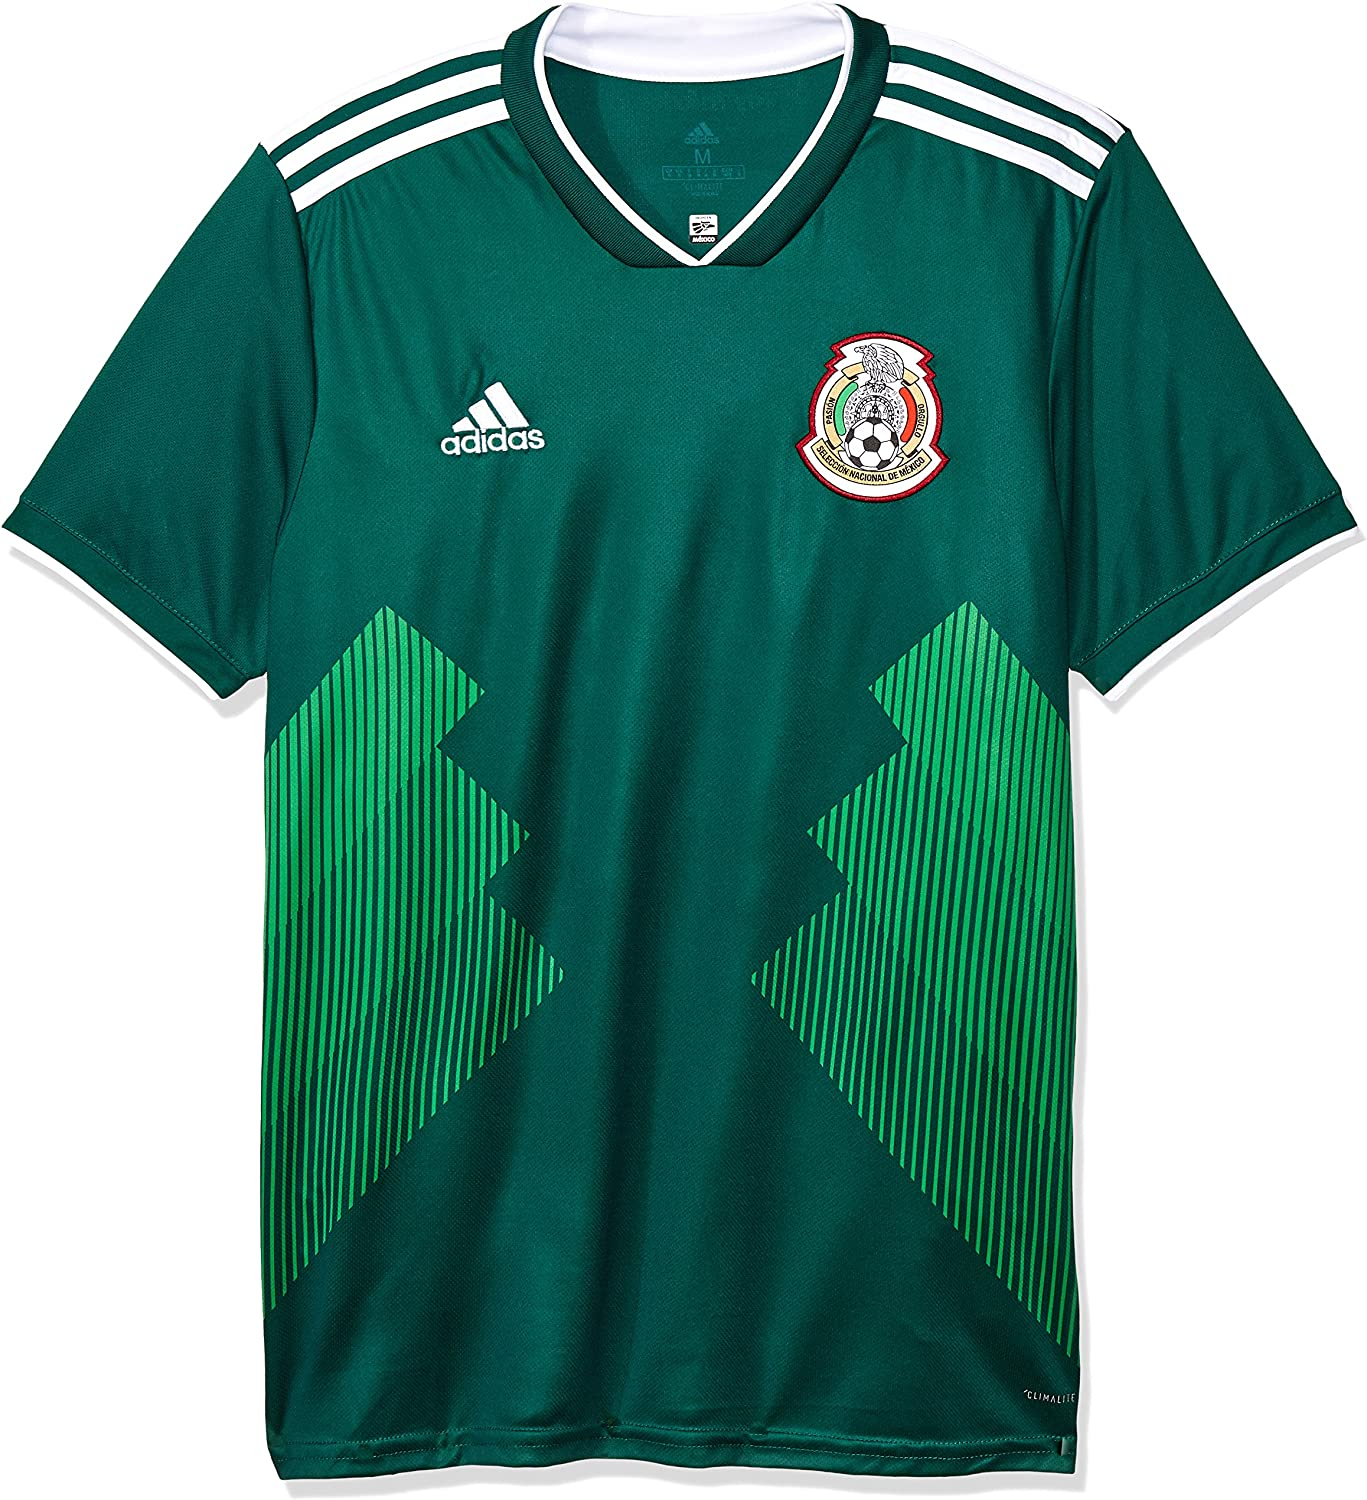 adidas 2018-2019 Mexico Home Football Soccer T-Shirt Jersey